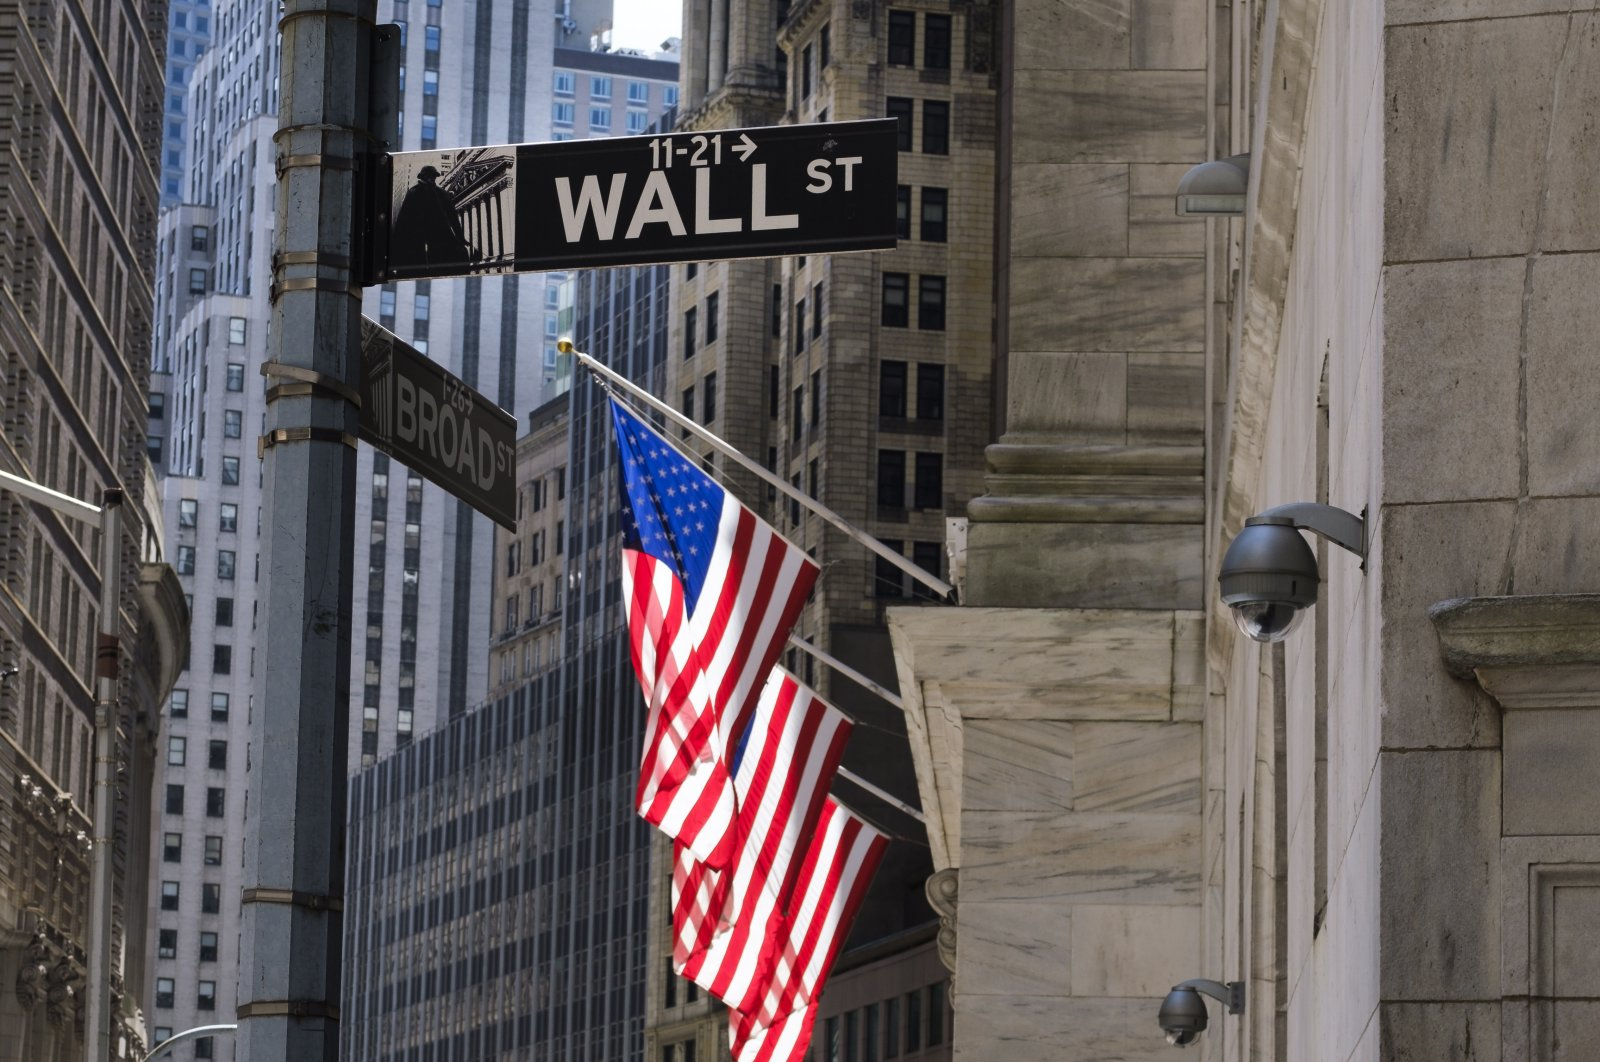 A view of a sign for Wall Street and the New York Stock Exchange in New York, New York, USA, 20 May 2020. The New York Exchange is set to reopen its trading floor next week after being closed since March due to the coronavirus pandemic. (EPA Photo)